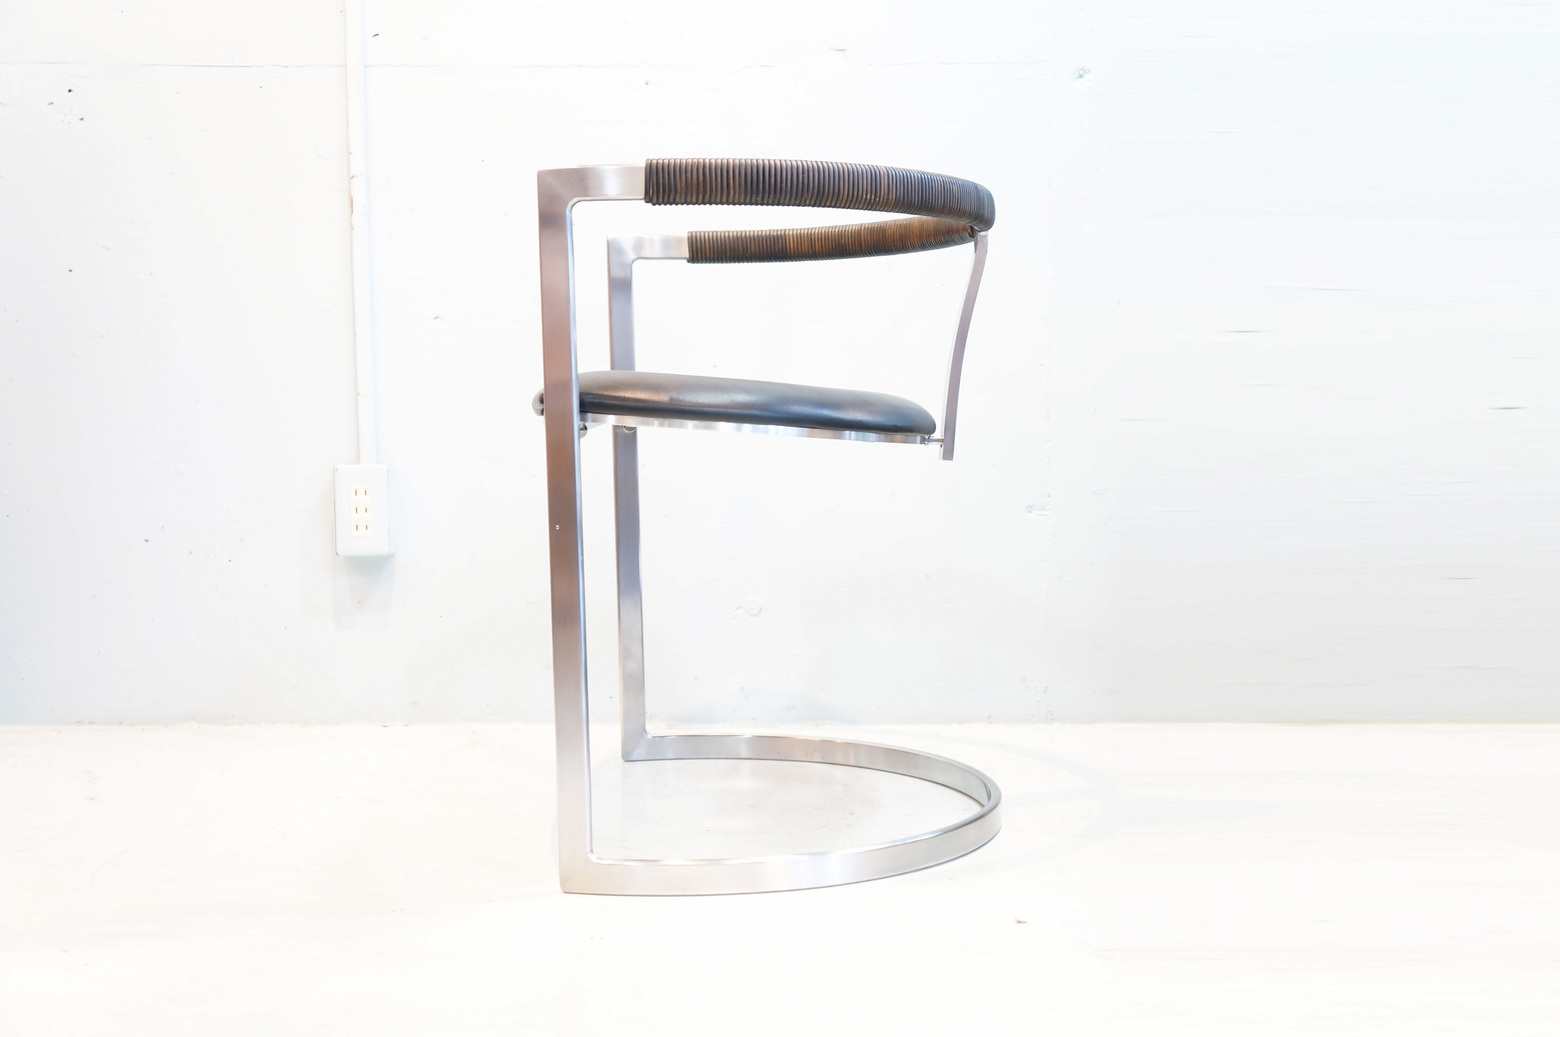 bo-ex model 591 FK collection Sculpture chair design by PREBEN FABRICIUS and JORGEN KASTHOLM Made in Denmark 1964 mobilia / ボーエックス スカルプチャーチェア プレベン・ファブリシャス ヨルゲン・カストホルム デザイン モビリア デンマーク